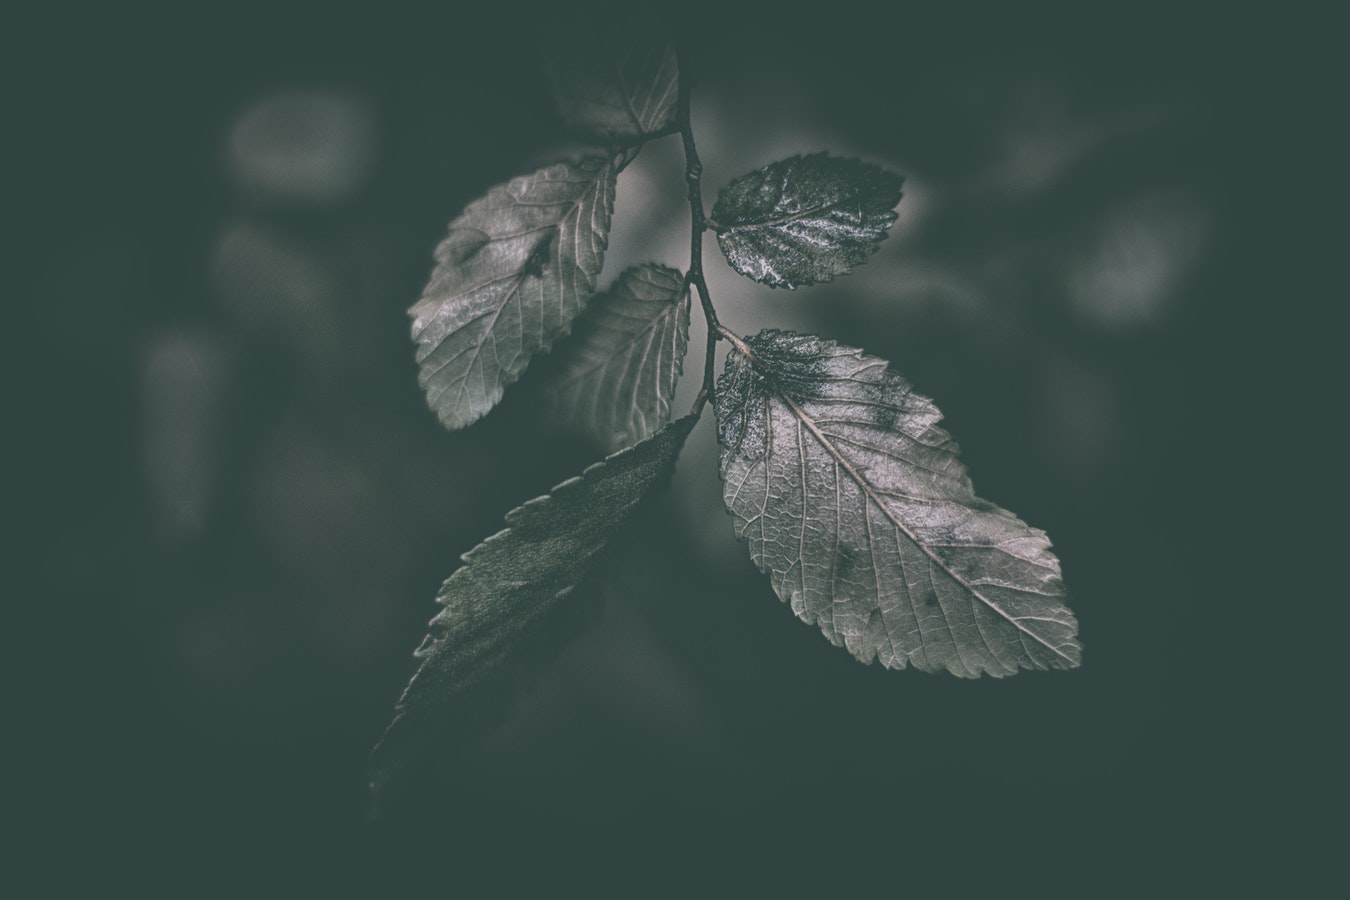 Foley - Crunching Dry Leaves In Hand - Some beautiful organic foley one shots created from the sound of dry leaves crunching. These samples work beautifully within ambient/experimental music and could be used as texture one shots in any musical style.June 1st 2019